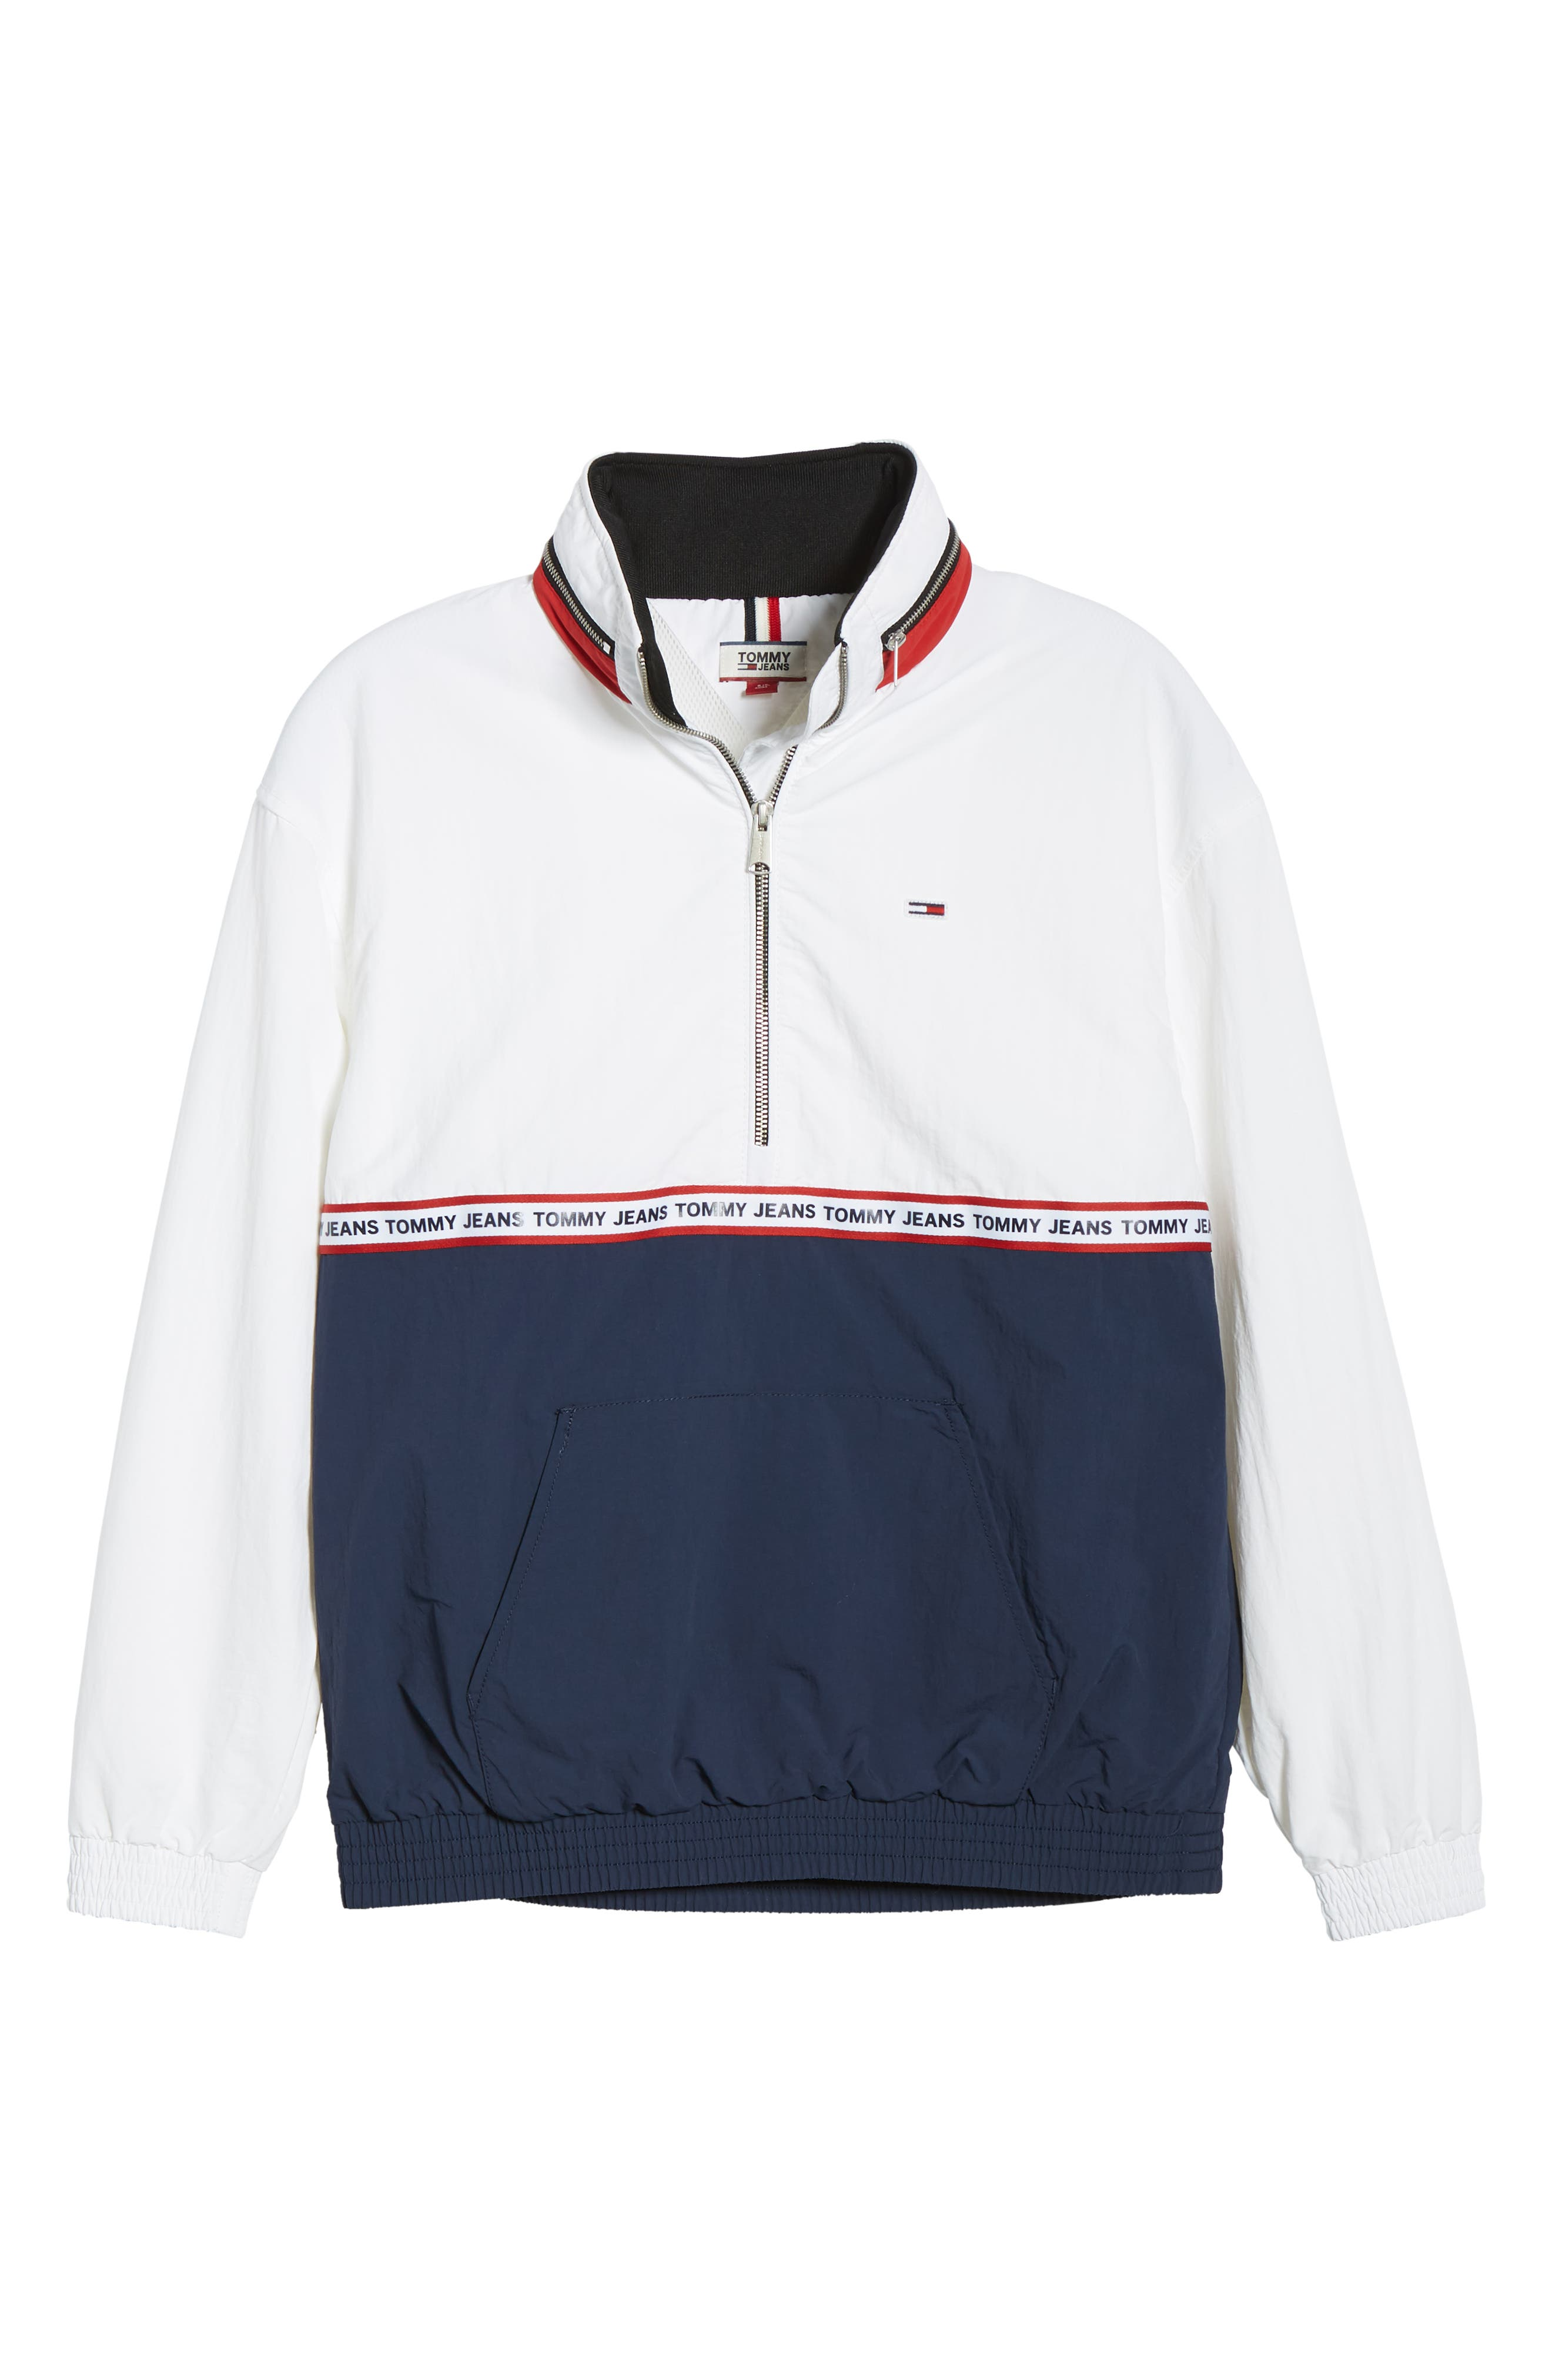 TOMMY JEANS,                             TJW Logo Tape Pullover,                             Alternate thumbnail 6, color,                             400